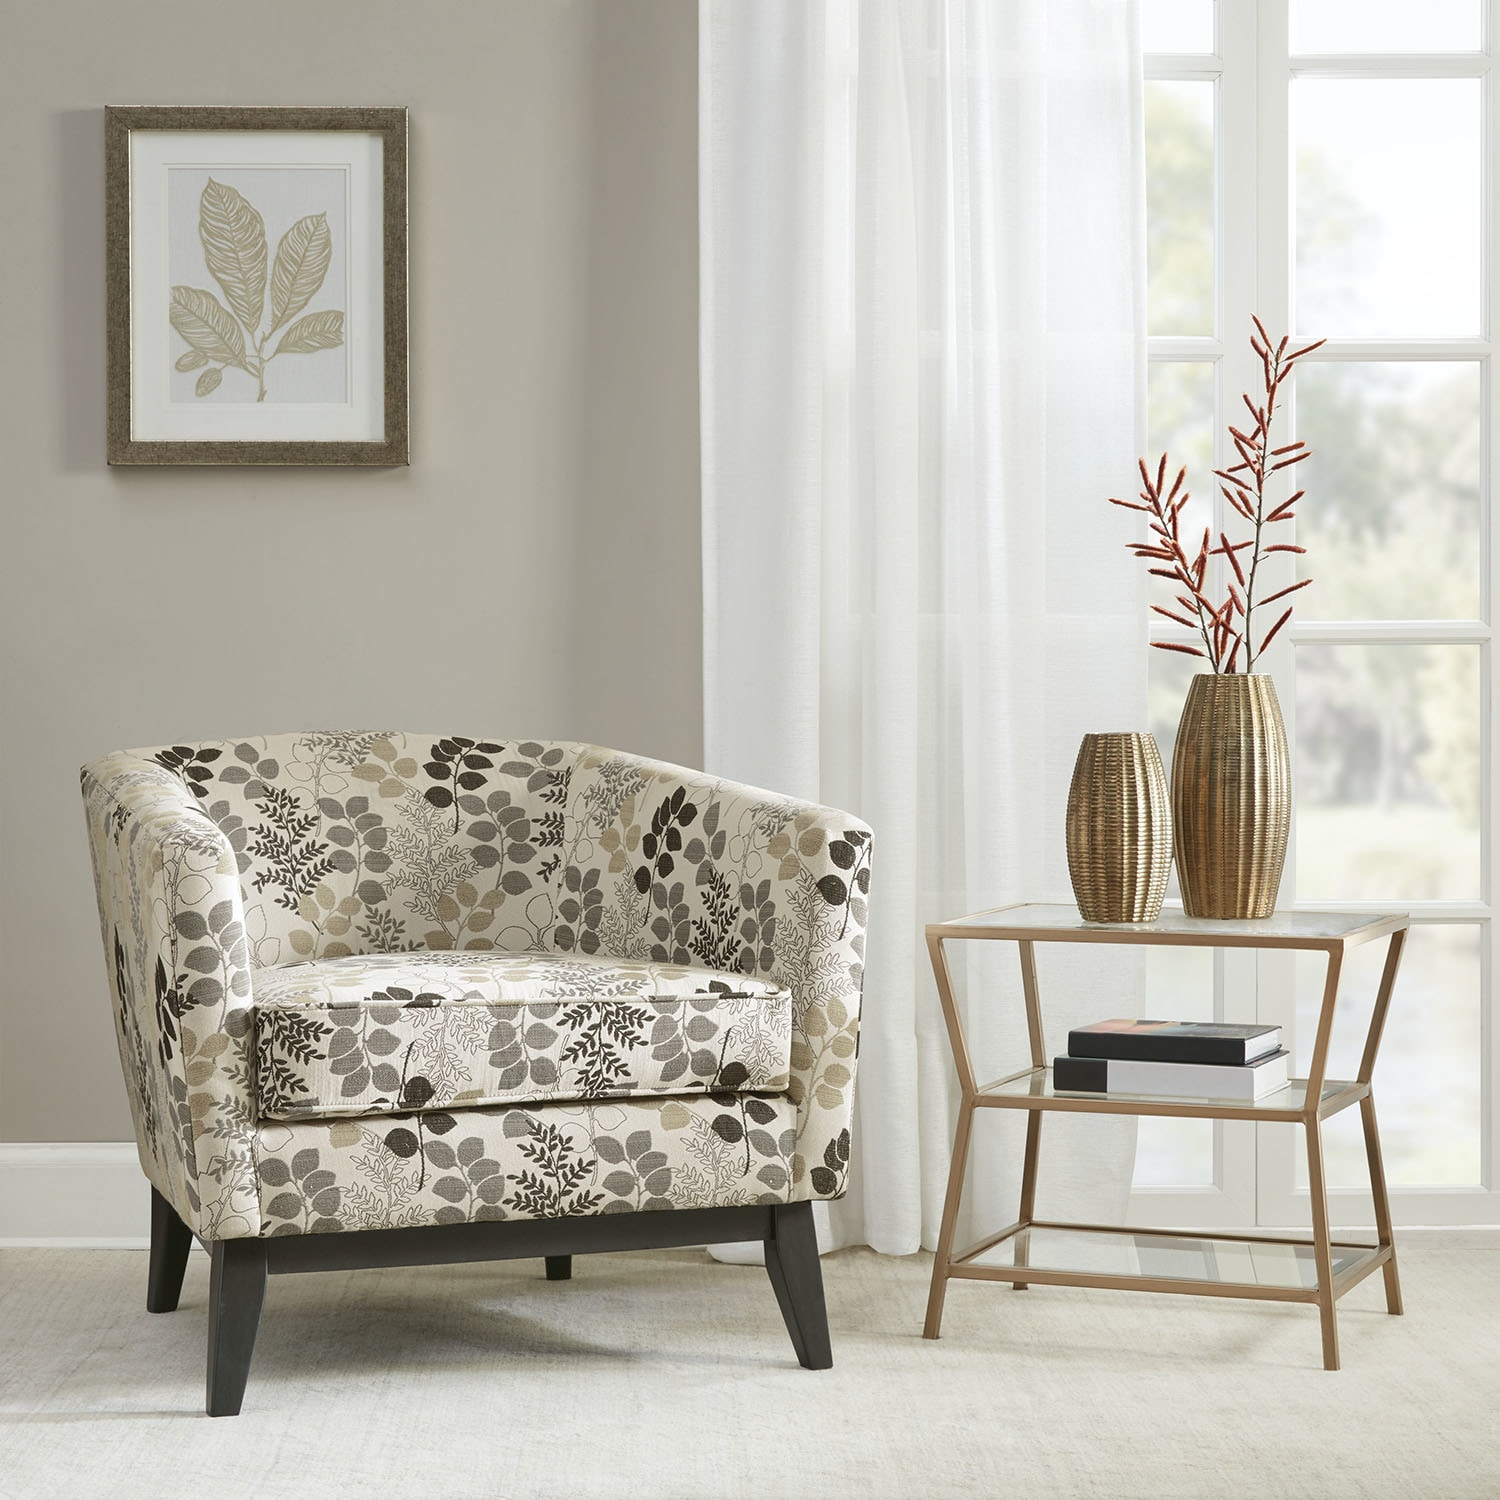 Clay Alder Home Percy Accent Chair Creme Winter Floral - Free ...